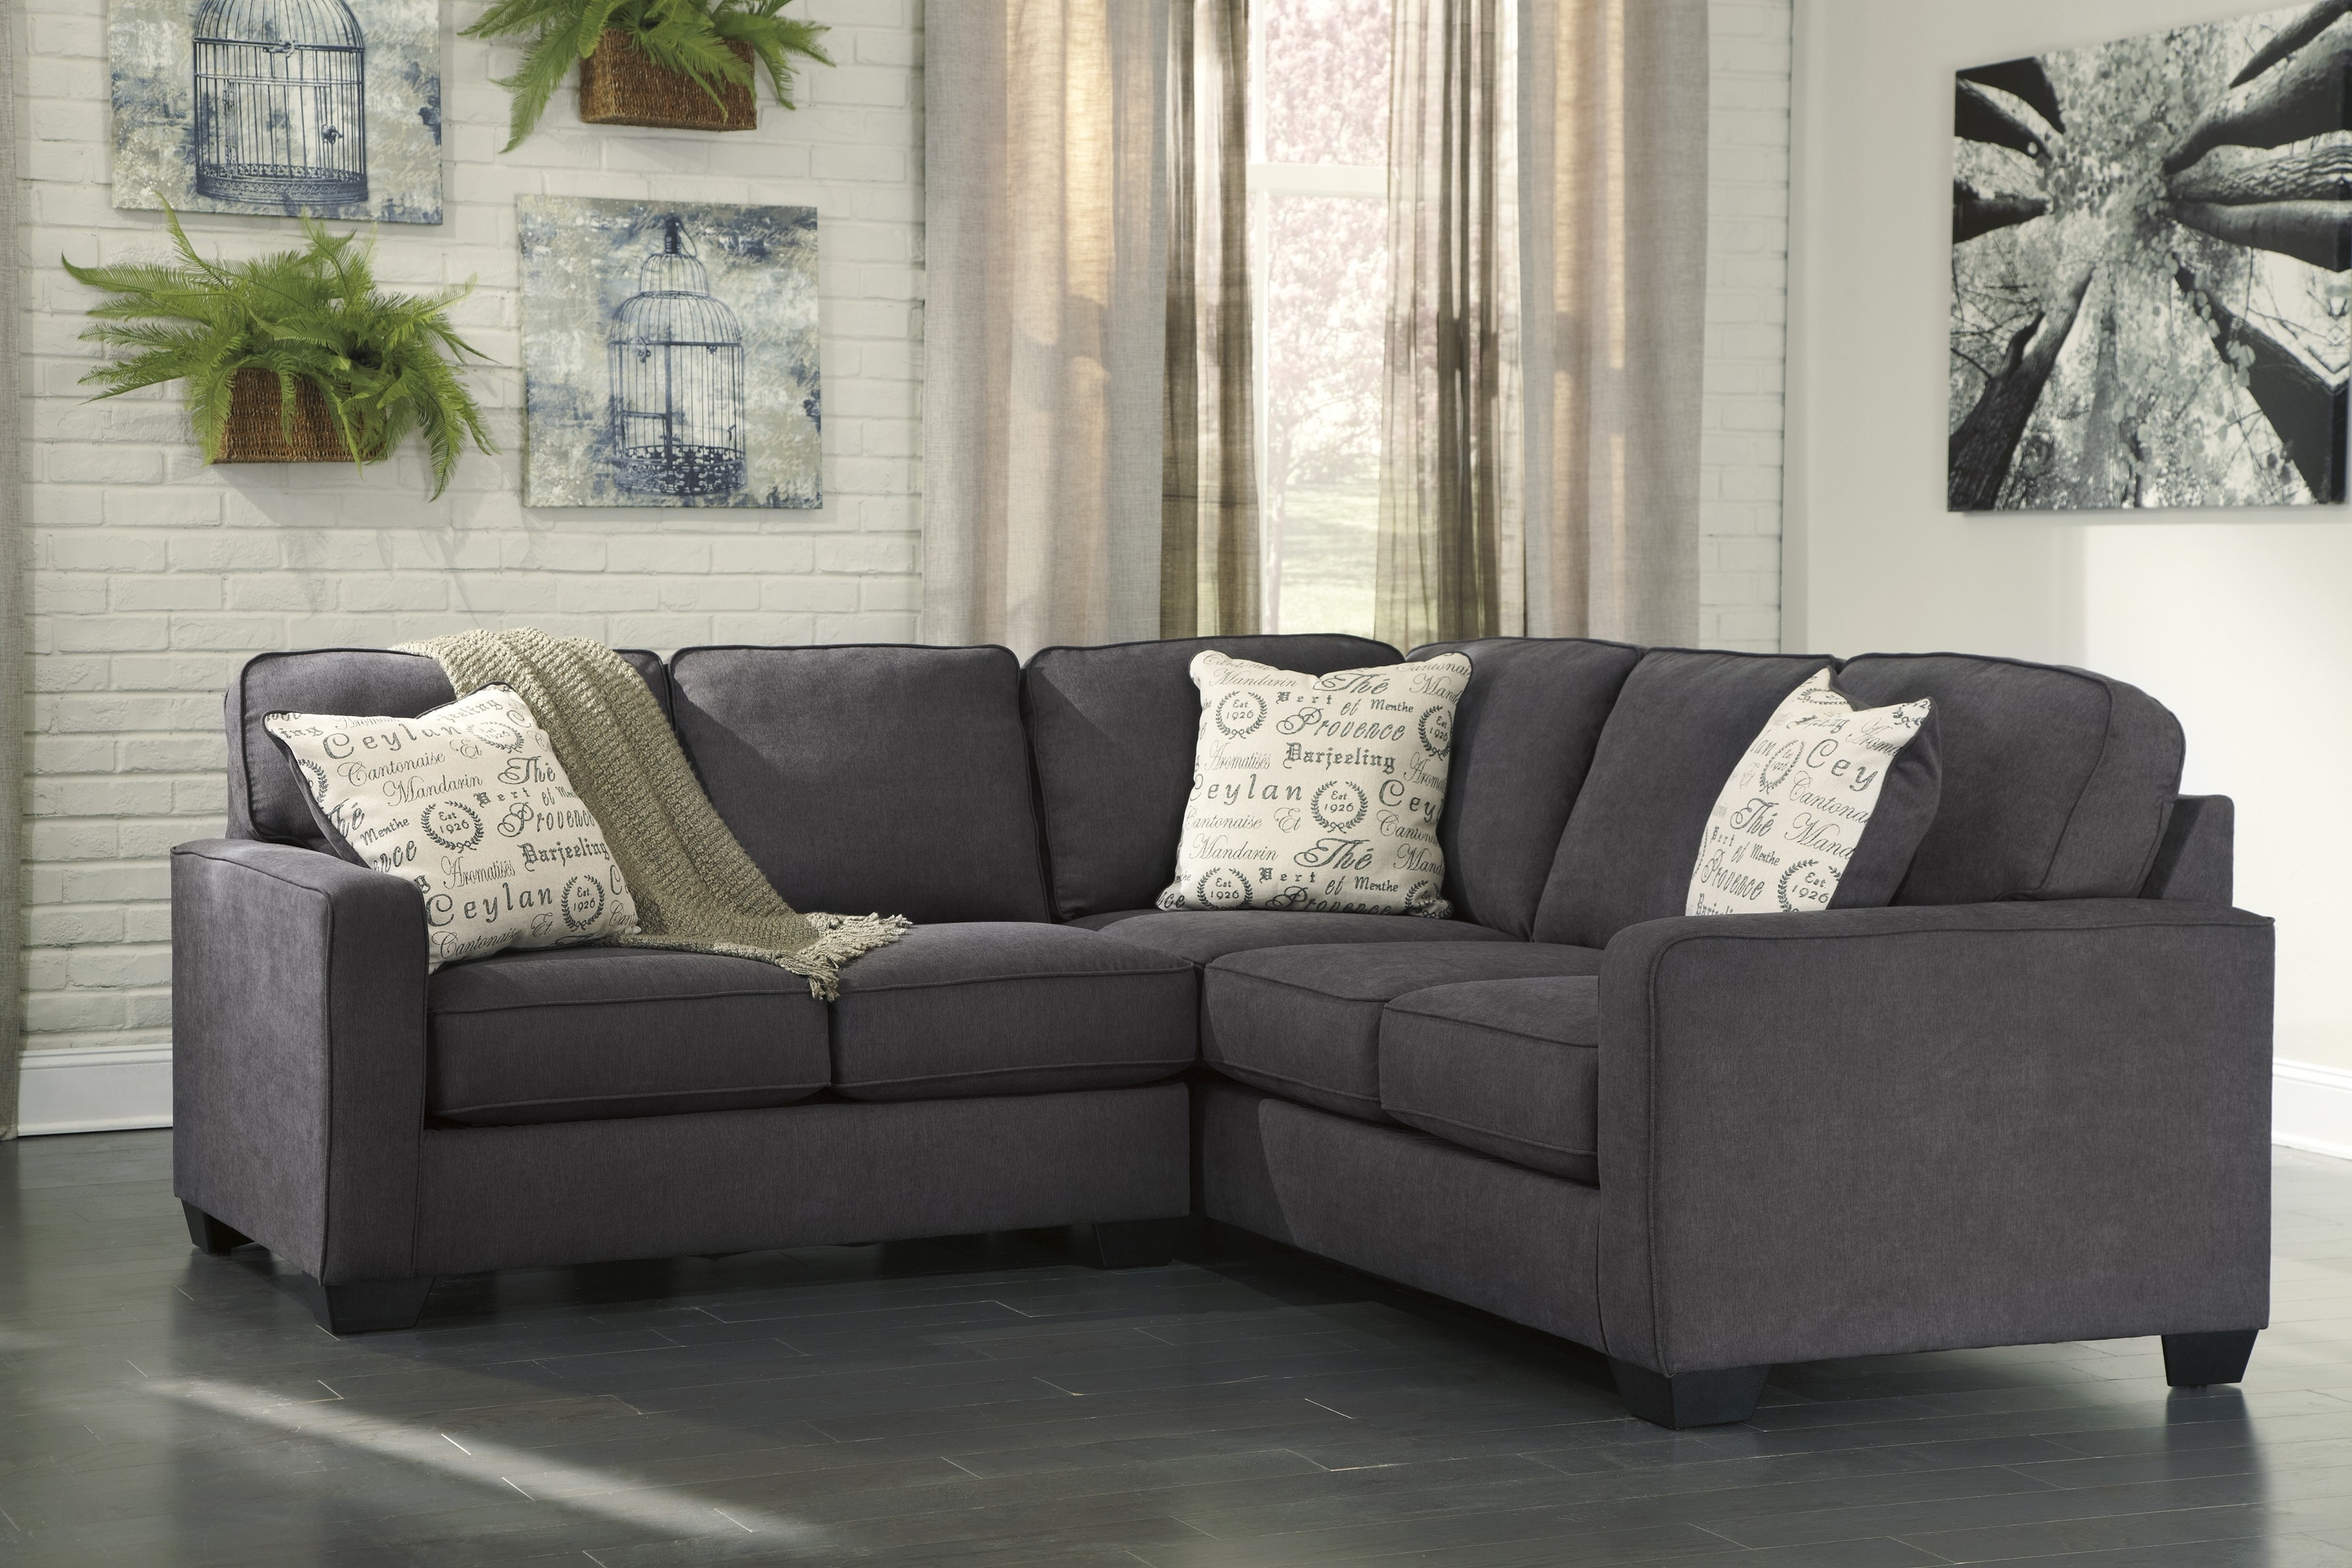 Sectional Sofas That Come In Pieces With Regard To 2018 Alenya Charcoal 2 Piece Sectional Sofa For $ (View 7 of 15)